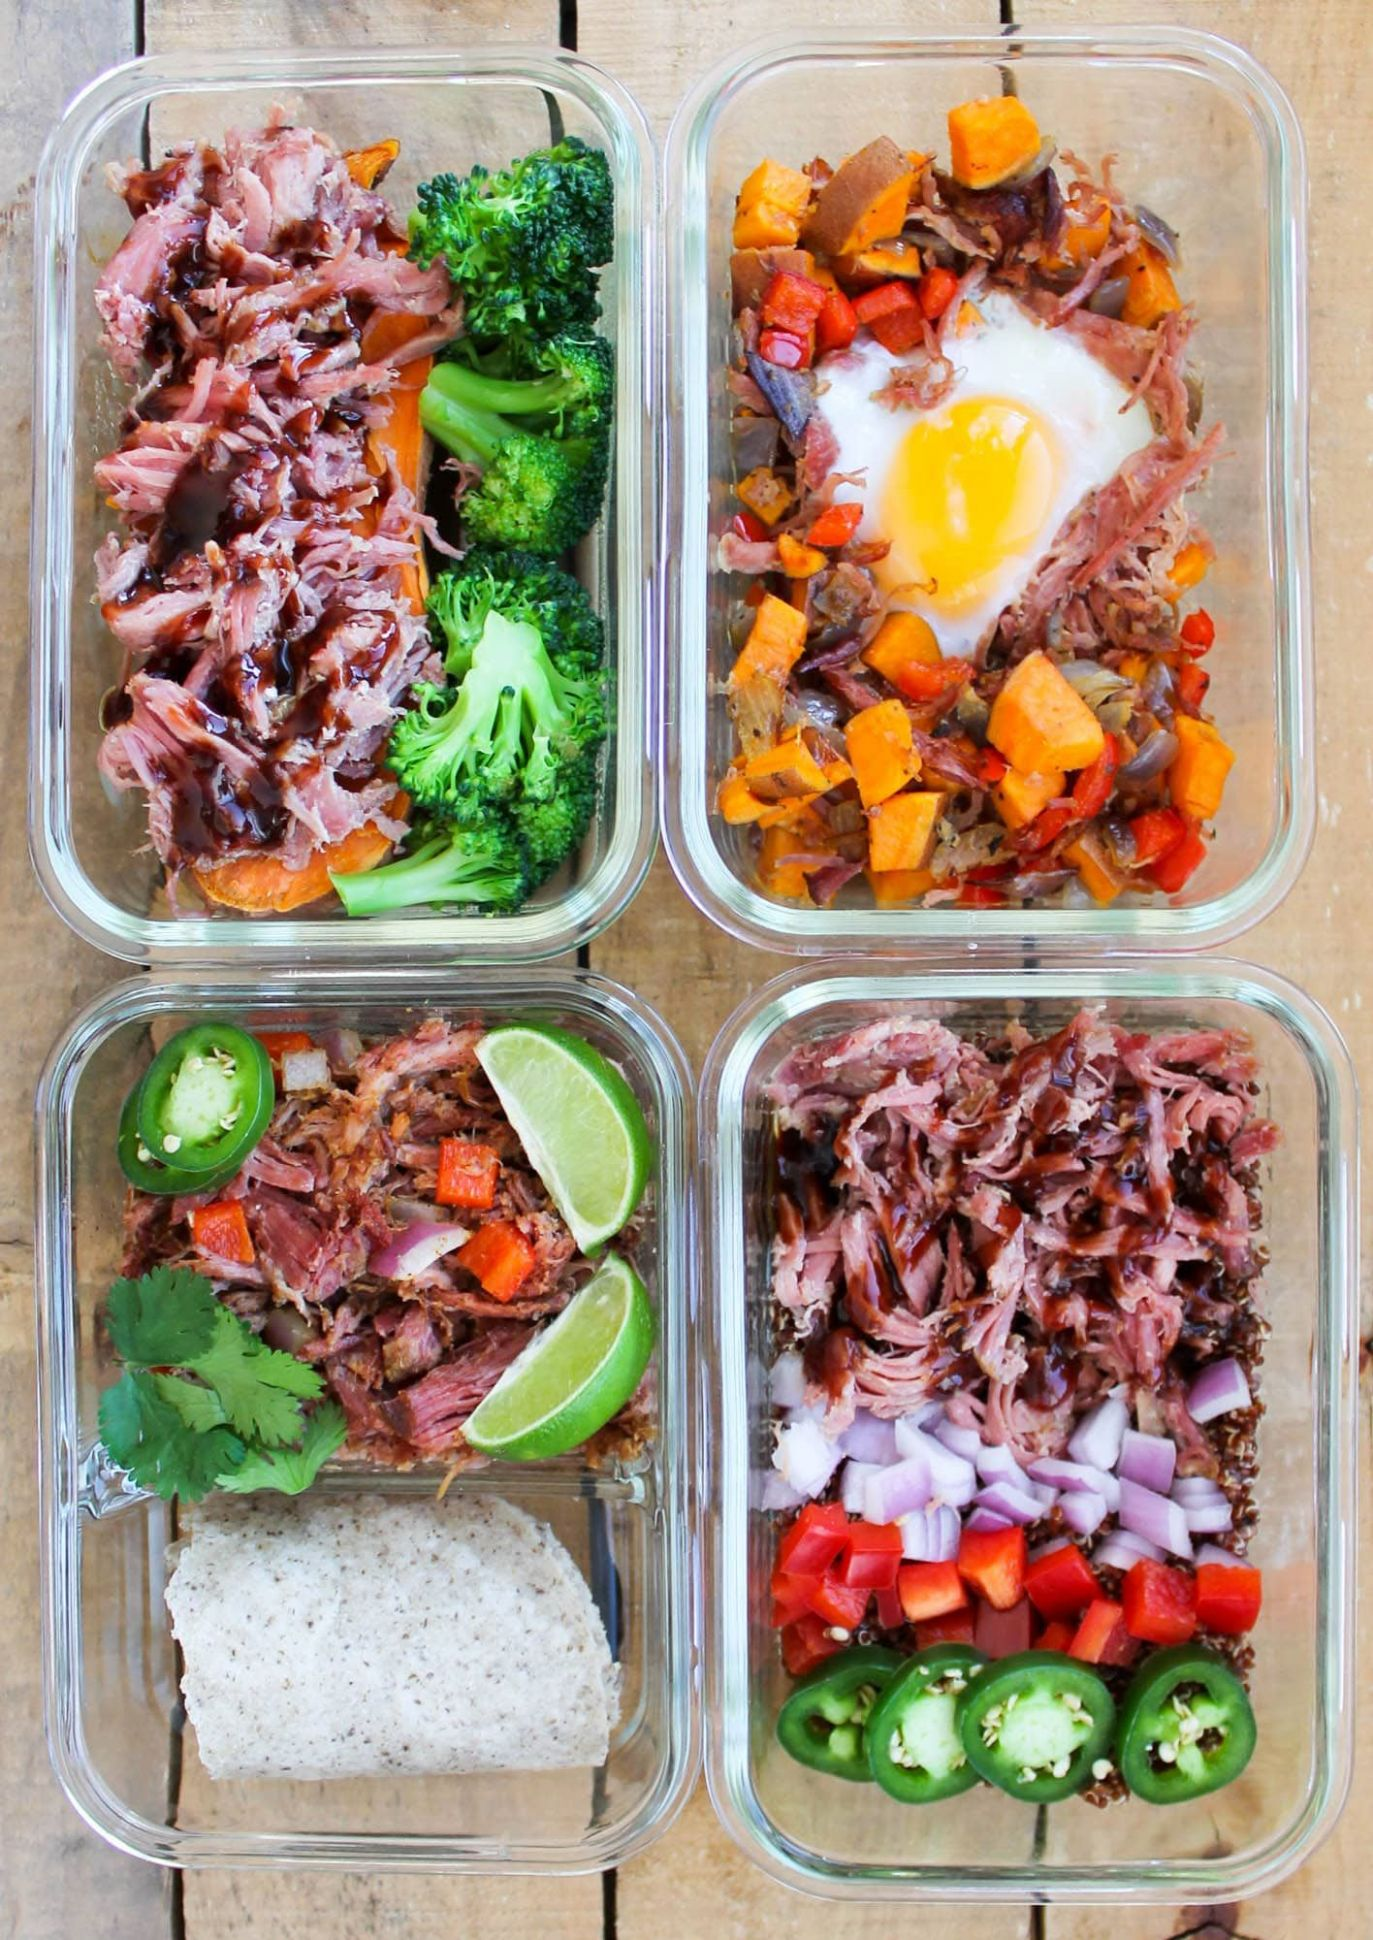 Pulled Pork Meal Prep Bowls: 12 Ways - Simple Recipes Meal Prep